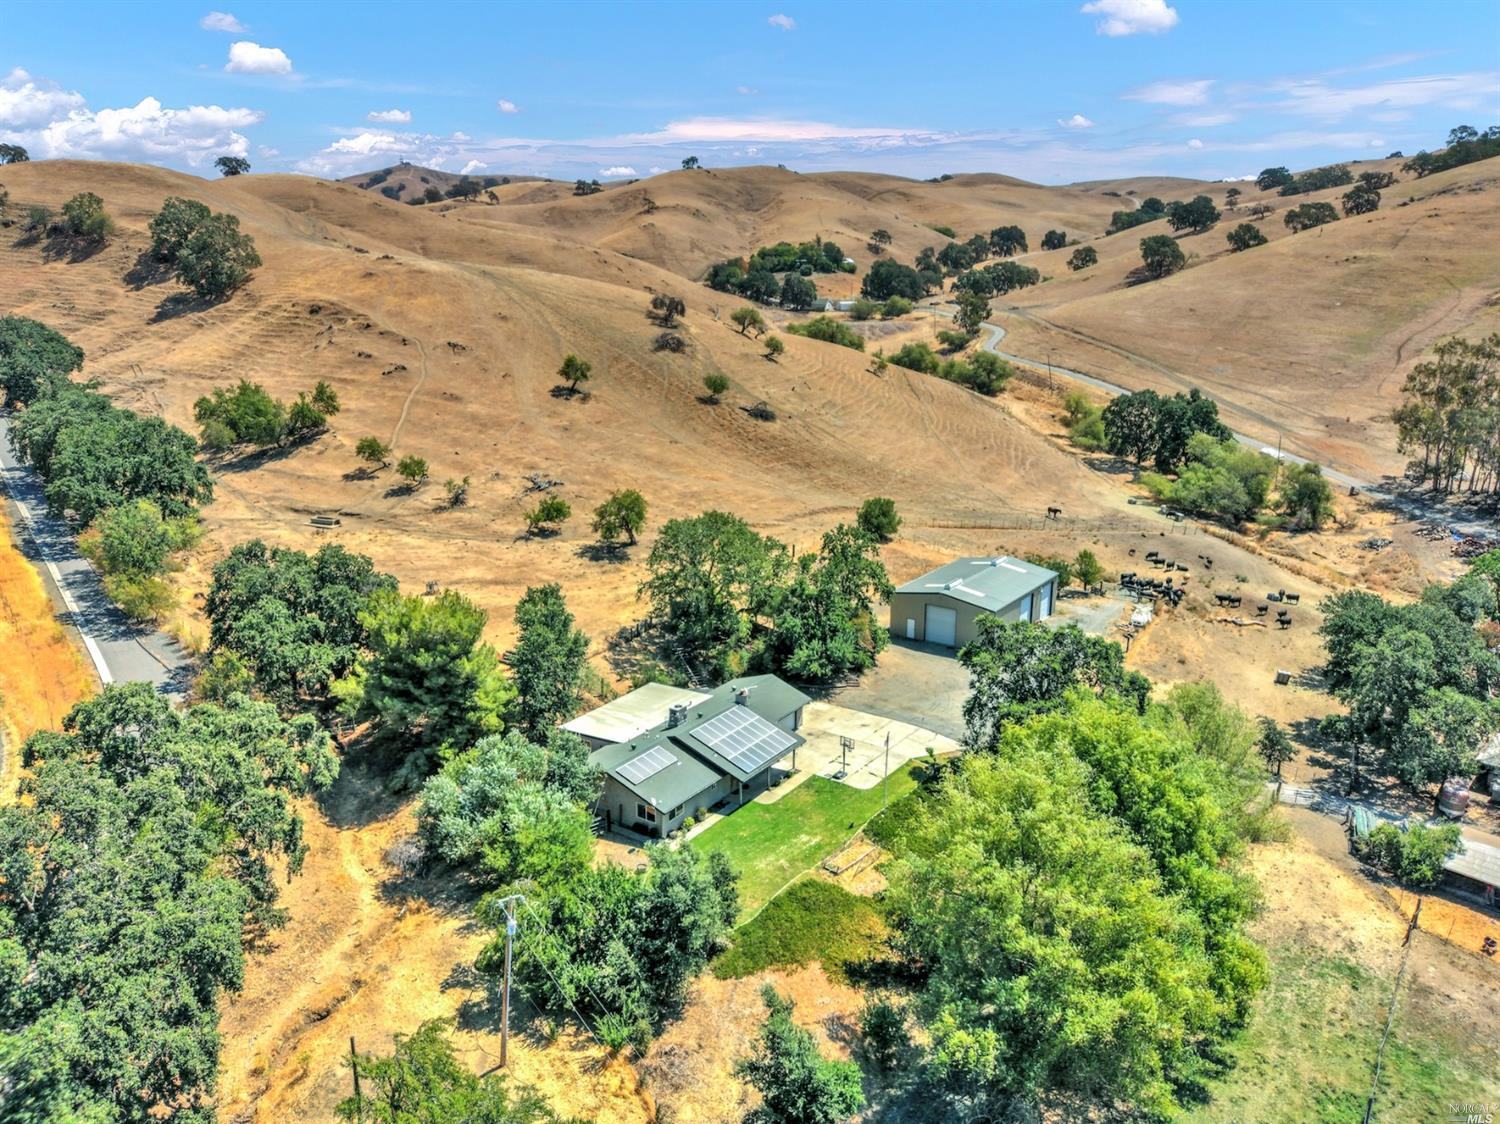 Exclusive opportunity to experience large ranch living in a private Paradise Valley location, only minutes to town. In addition to your own 44.9-acres, you will have 1/3 ownership on a 146.58-acre parcel which also is open grazing land with special views, ponds, oaks and privacy. Spectacular land showcases rolling hills, open grazing pastures, seasonal creeks, ponds and many large oak trees. Per the owner, dove, deer, wild turkey and quail hunting is excellent. Enjoy quads, hiking, horseback, camping and picnicking in your private paradise. Single-story home on the property offers owned solar, dual pane windows and kitchen with granite counters and gas range. Property has a huge 40x60 ft workshop. Location is approx. halfway between San Fra